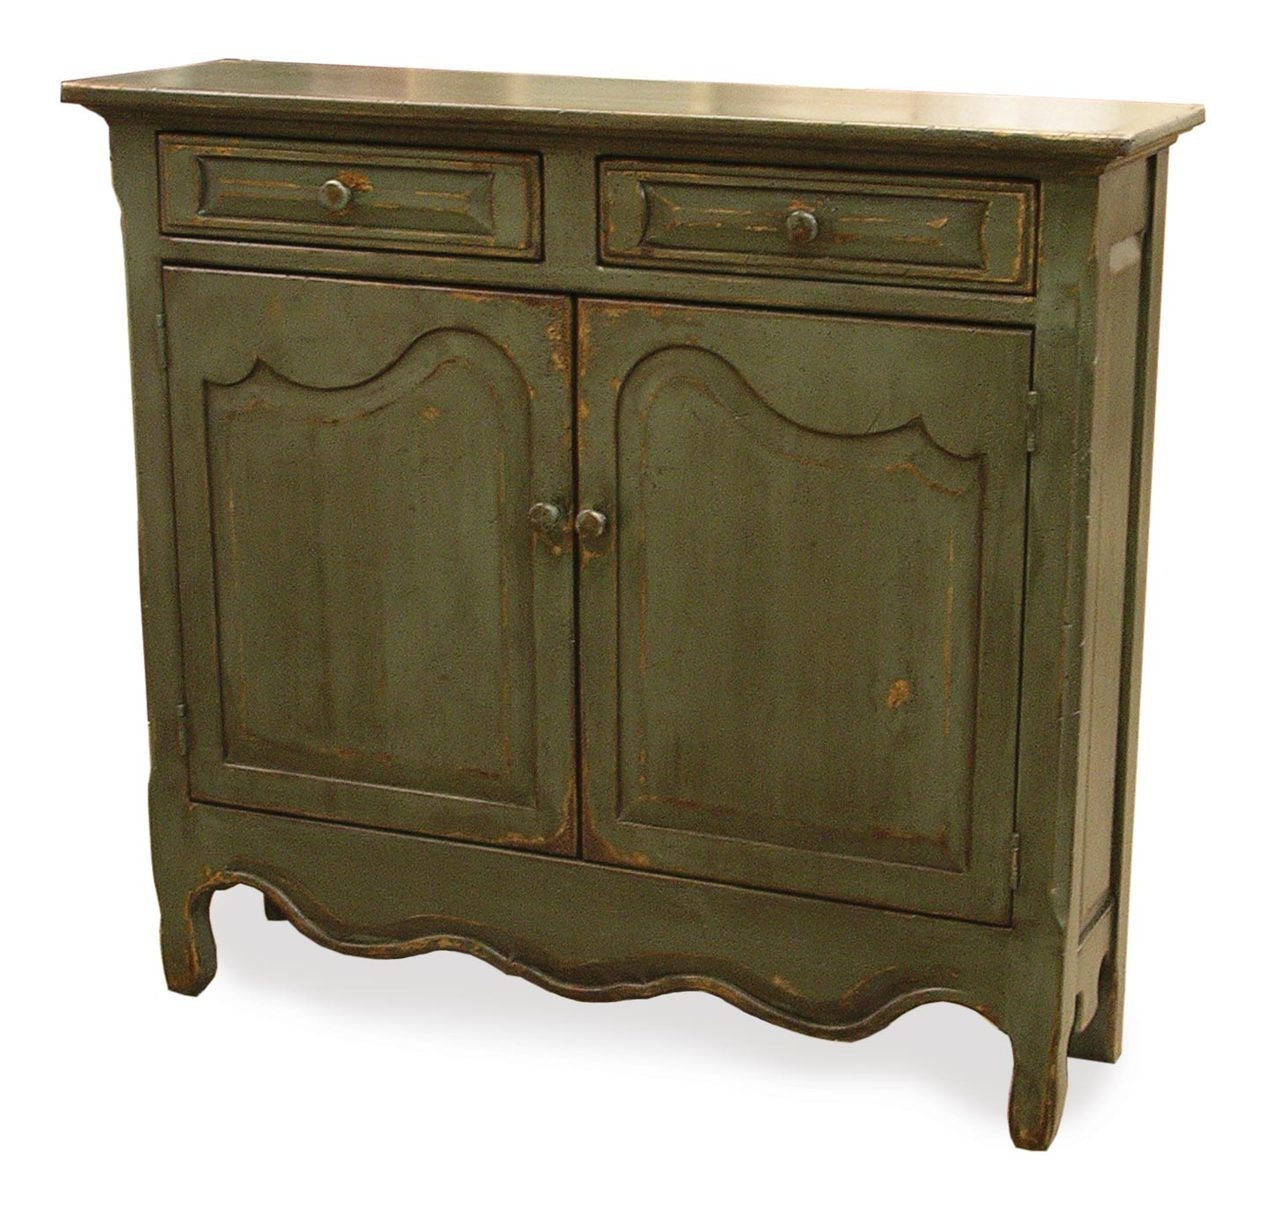 habersham furniture 17 5132 living room french cottage hall chest rh goodshomefurnishings com french cottage furniture for sale french cottage furniture for less